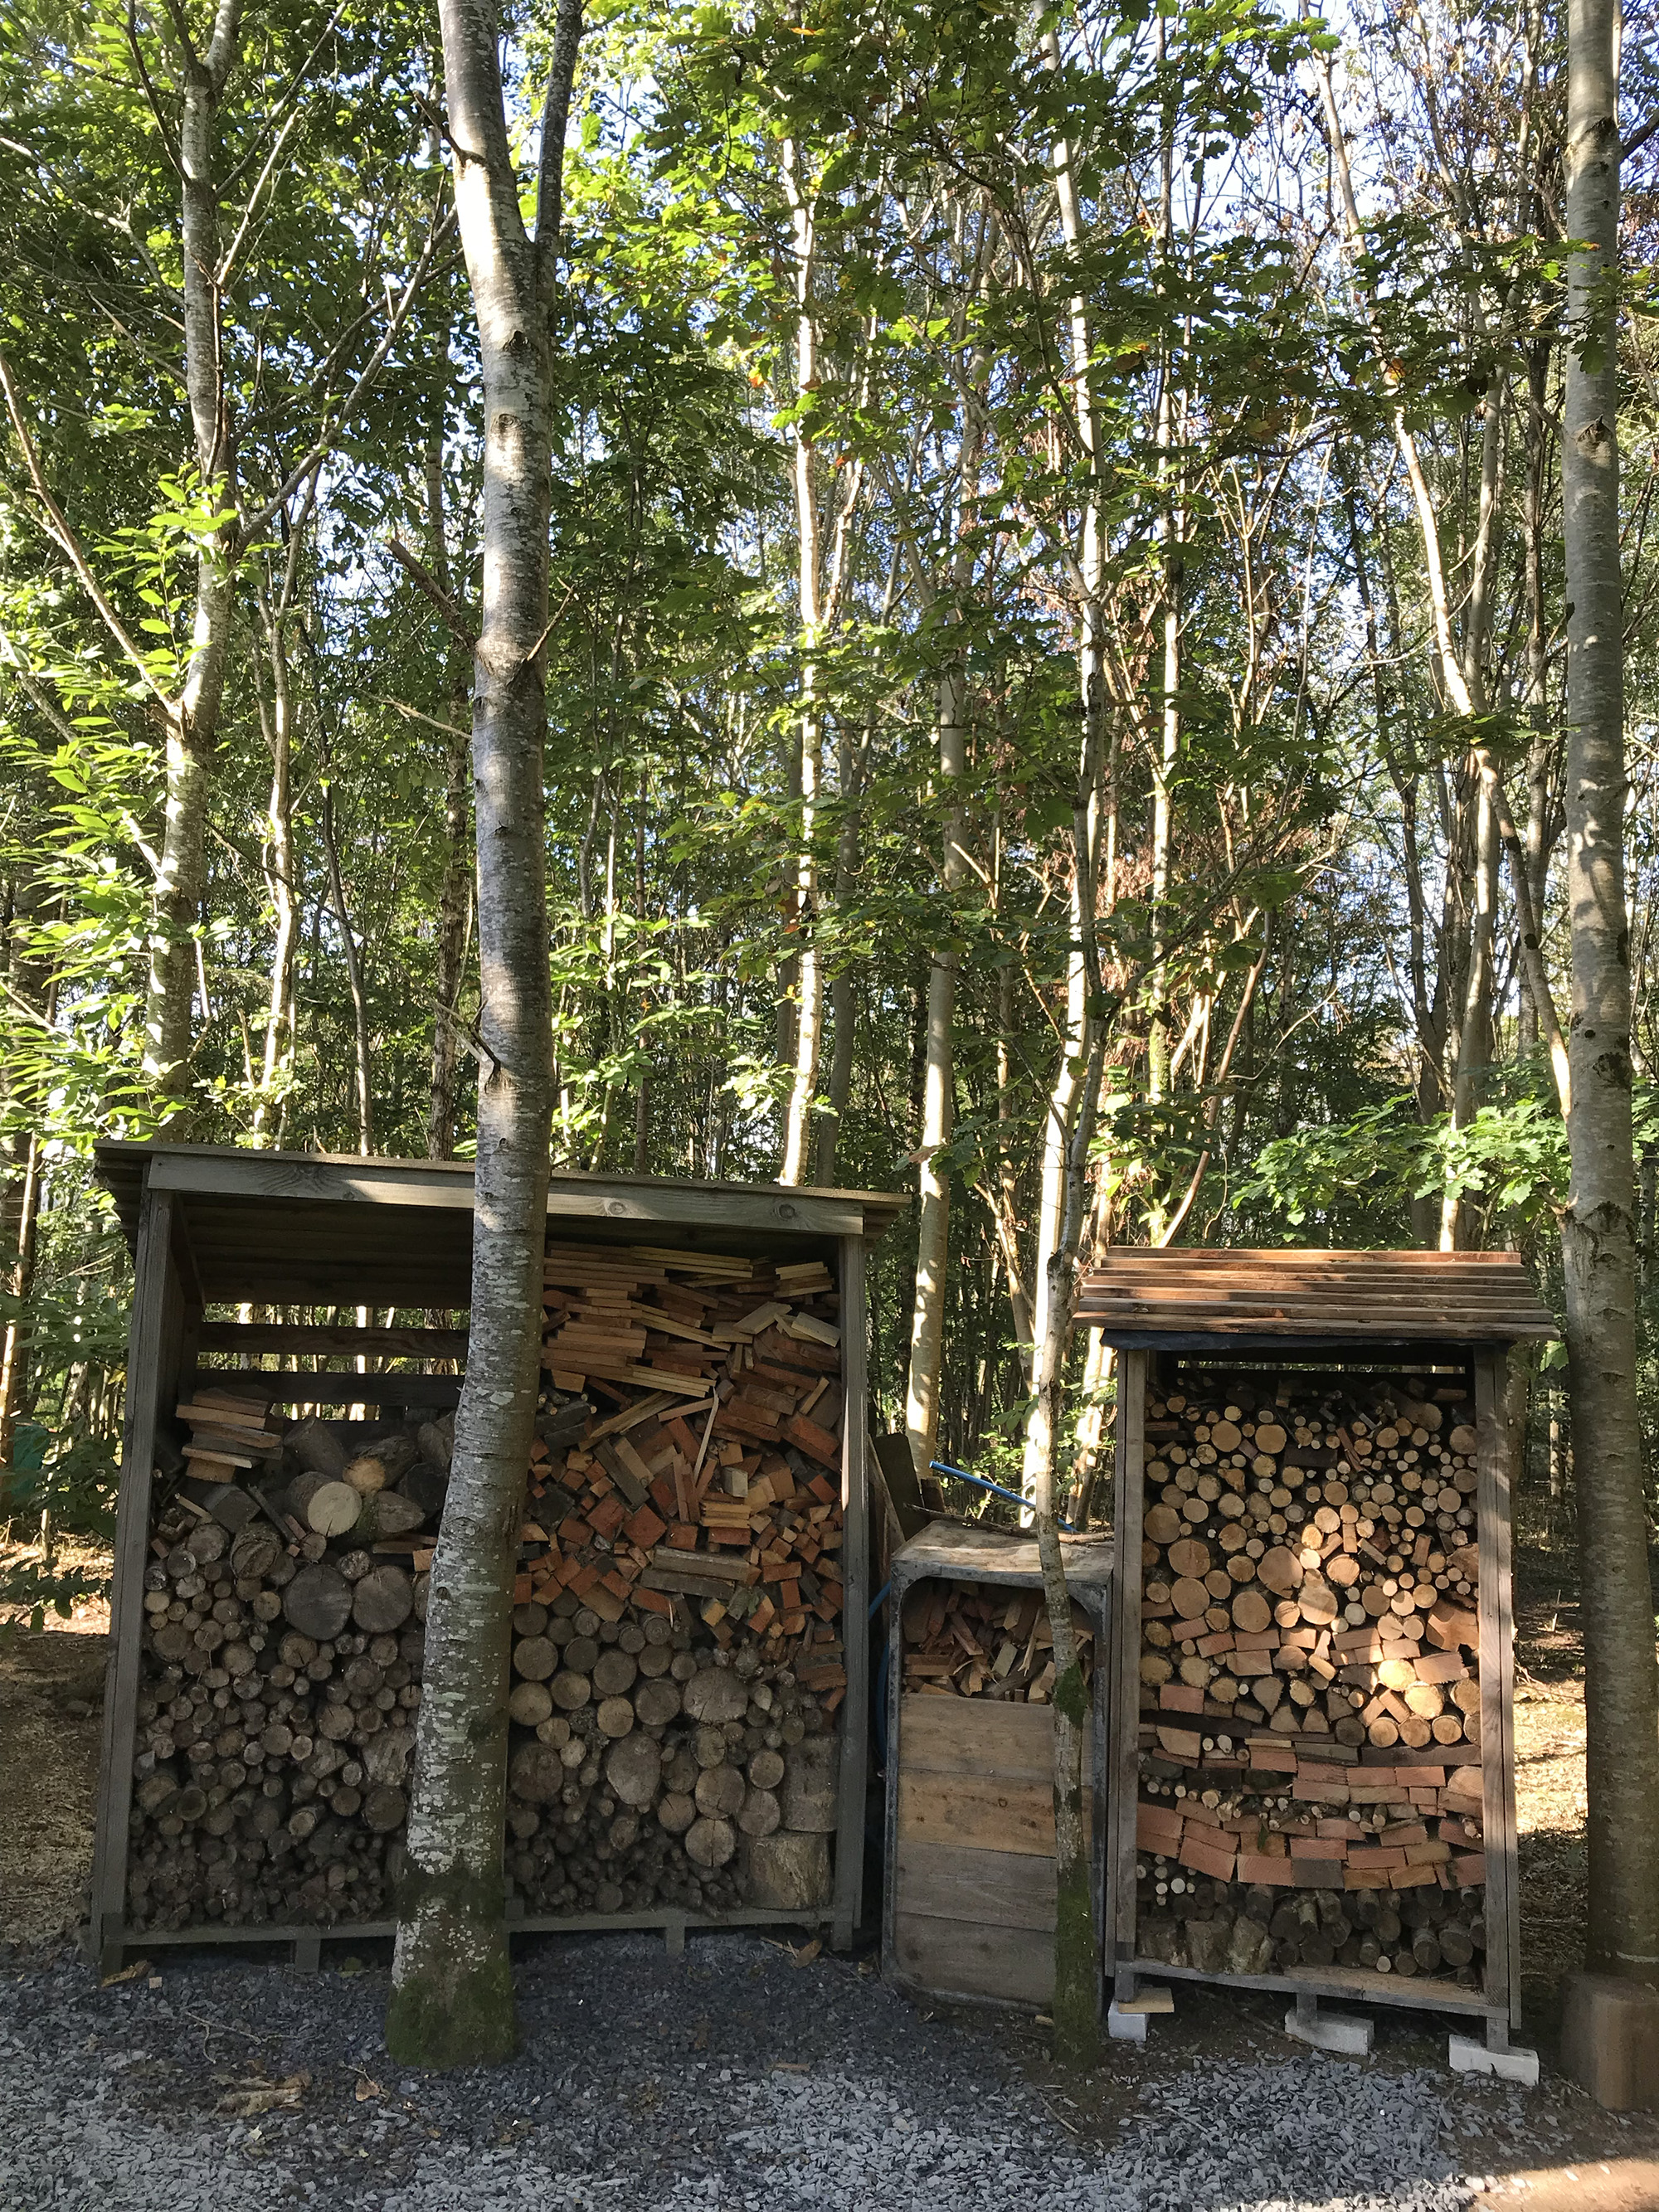 Firewood store for campers